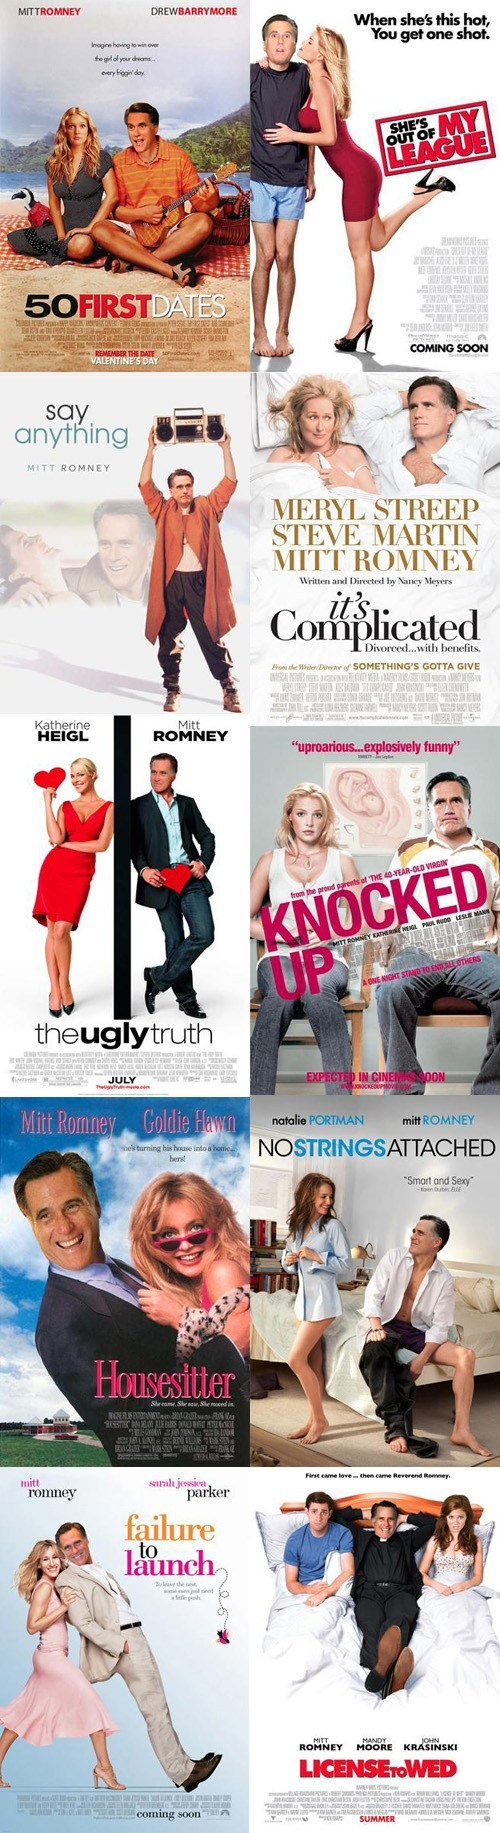 Mitt Romney movies posters romantic comedies - 6601892608